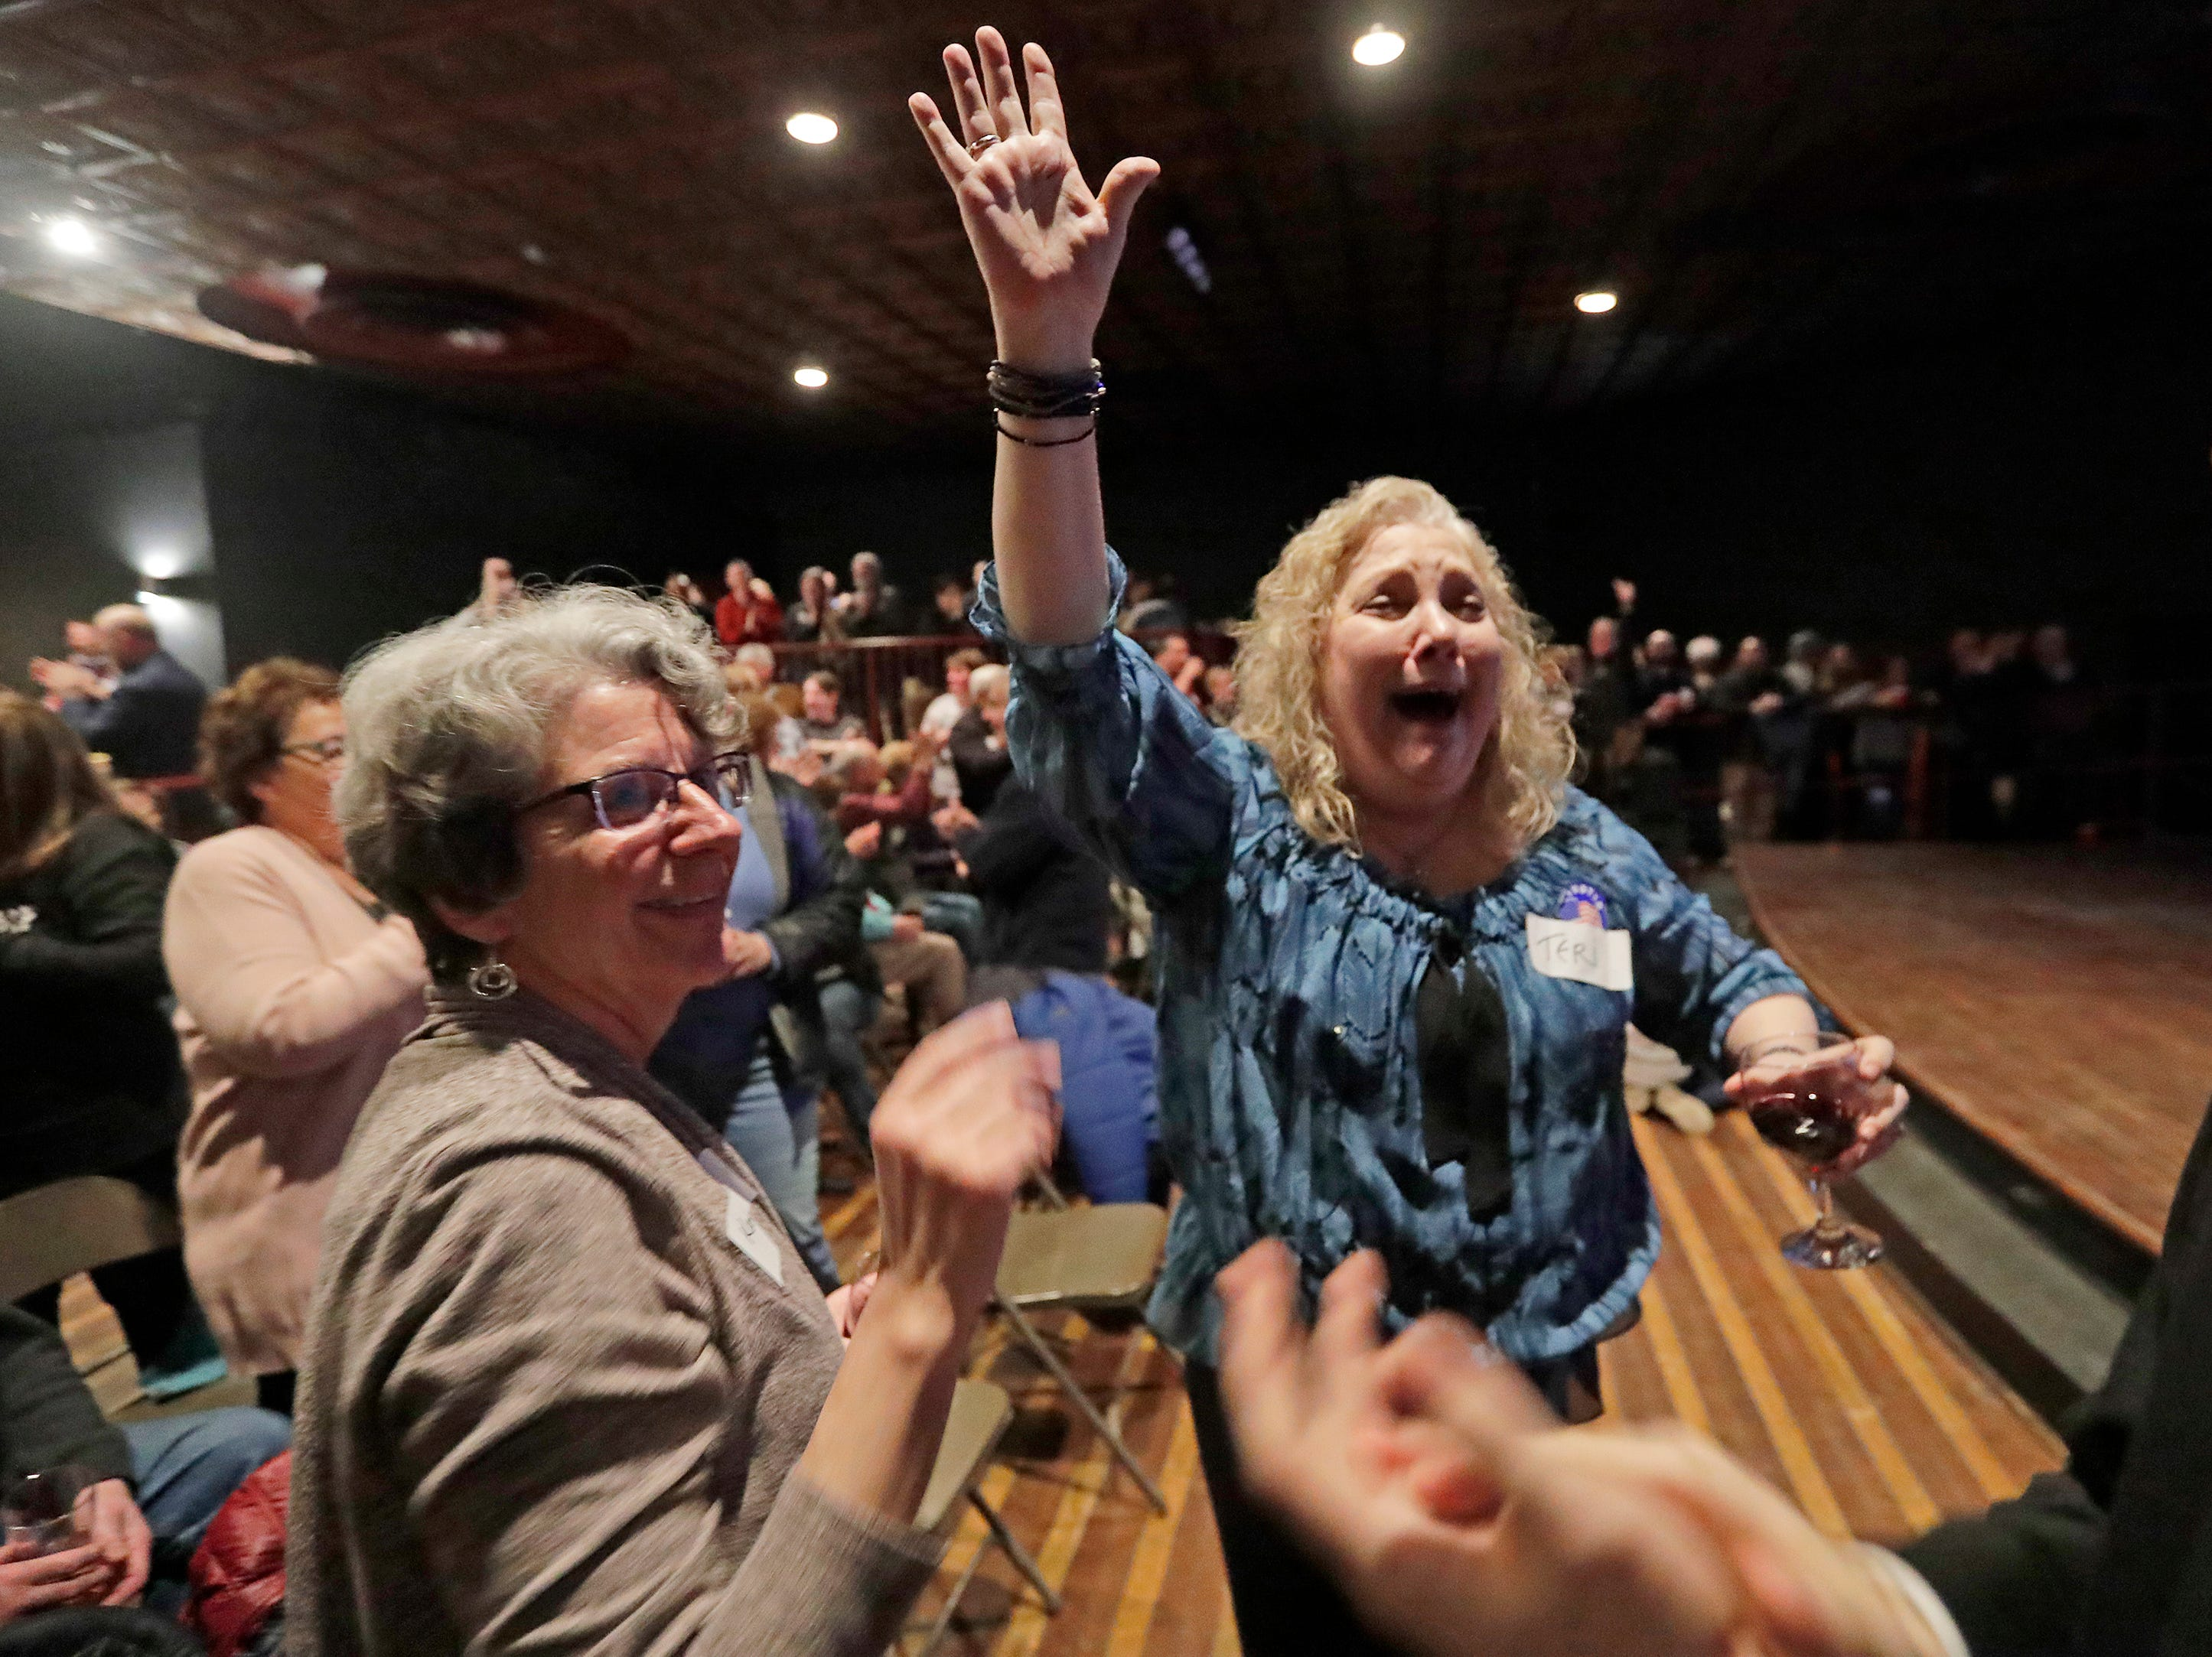 Teri Kilp, supporter of mayor-elect Eric Genrich reacts as the election results are announced at the Tarlton Theater on Tuesday, April 2, 2019 in Green Bay, Wis.